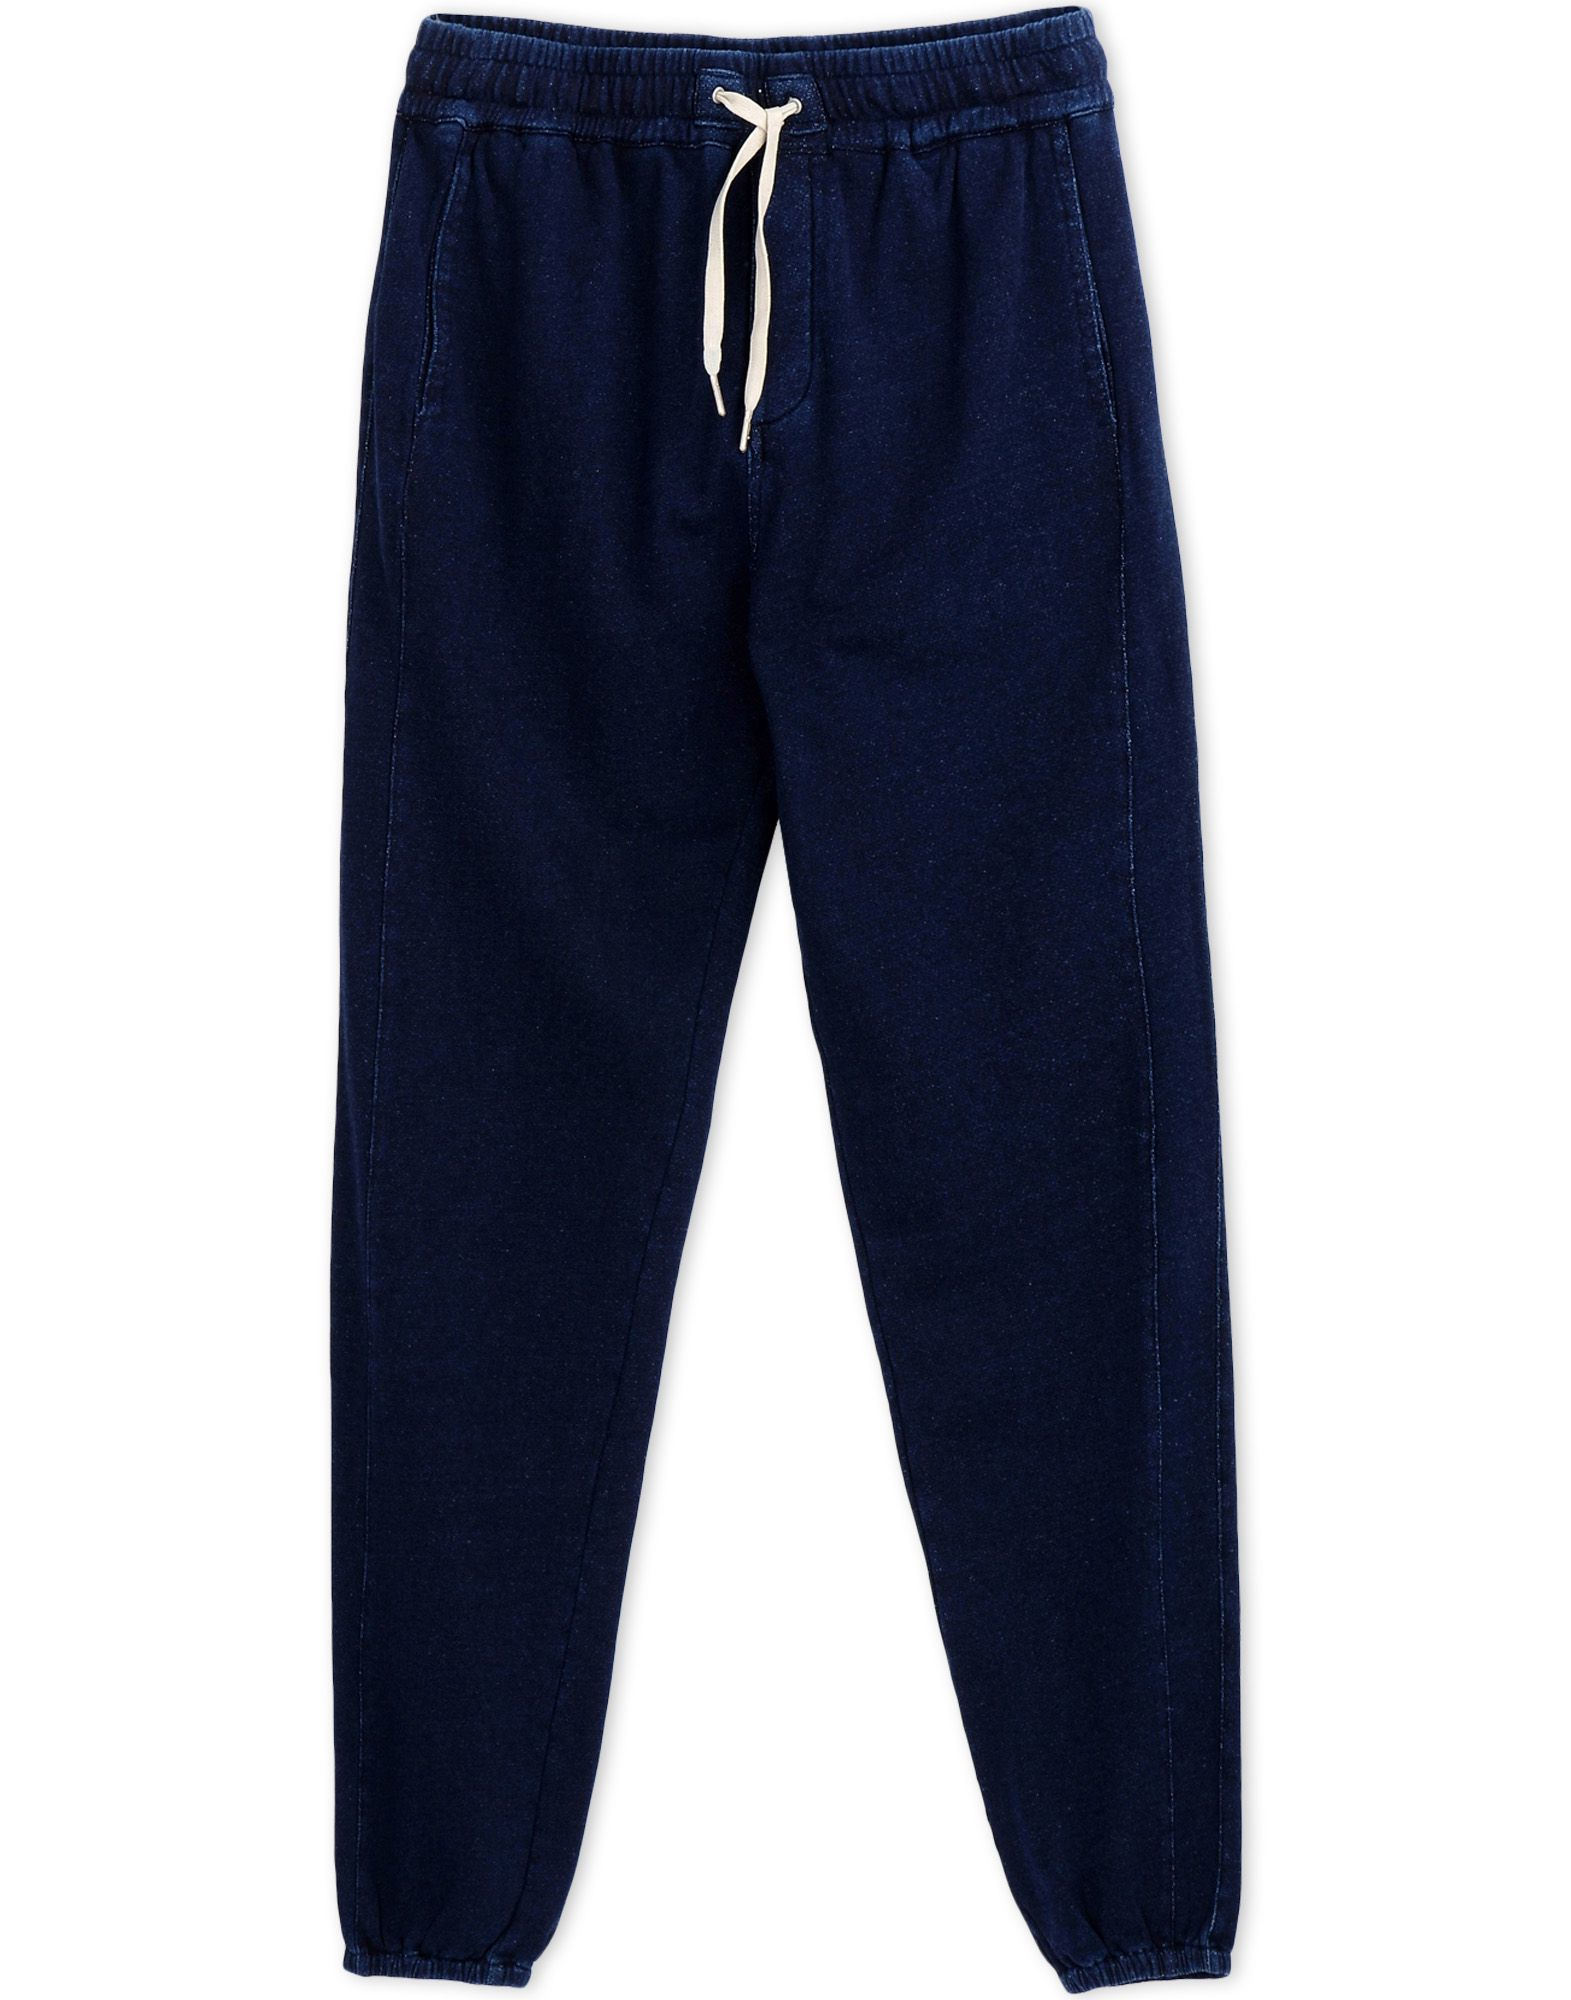 Find great deals on eBay for blue sweatpants. Shop with confidence.